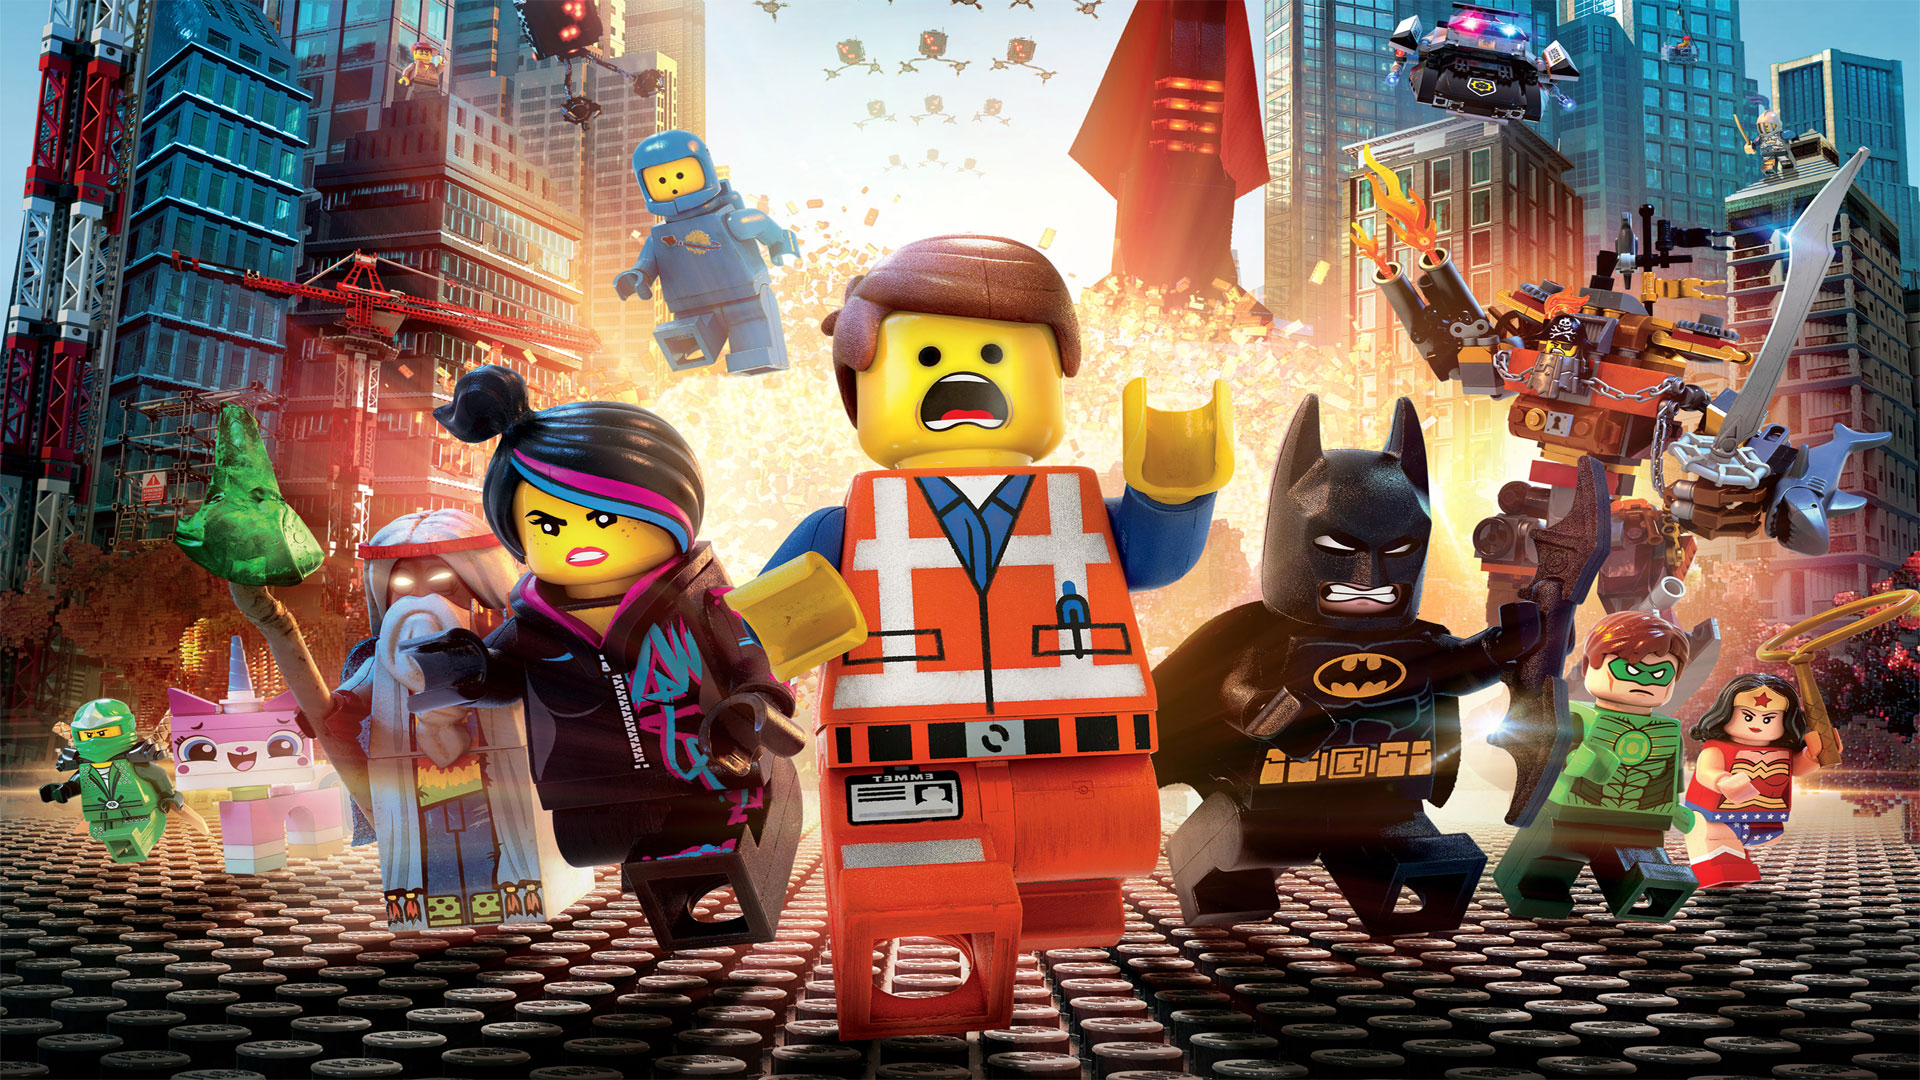 Lego Movie Backgrounds Download HD Wallpapers 1920x1080